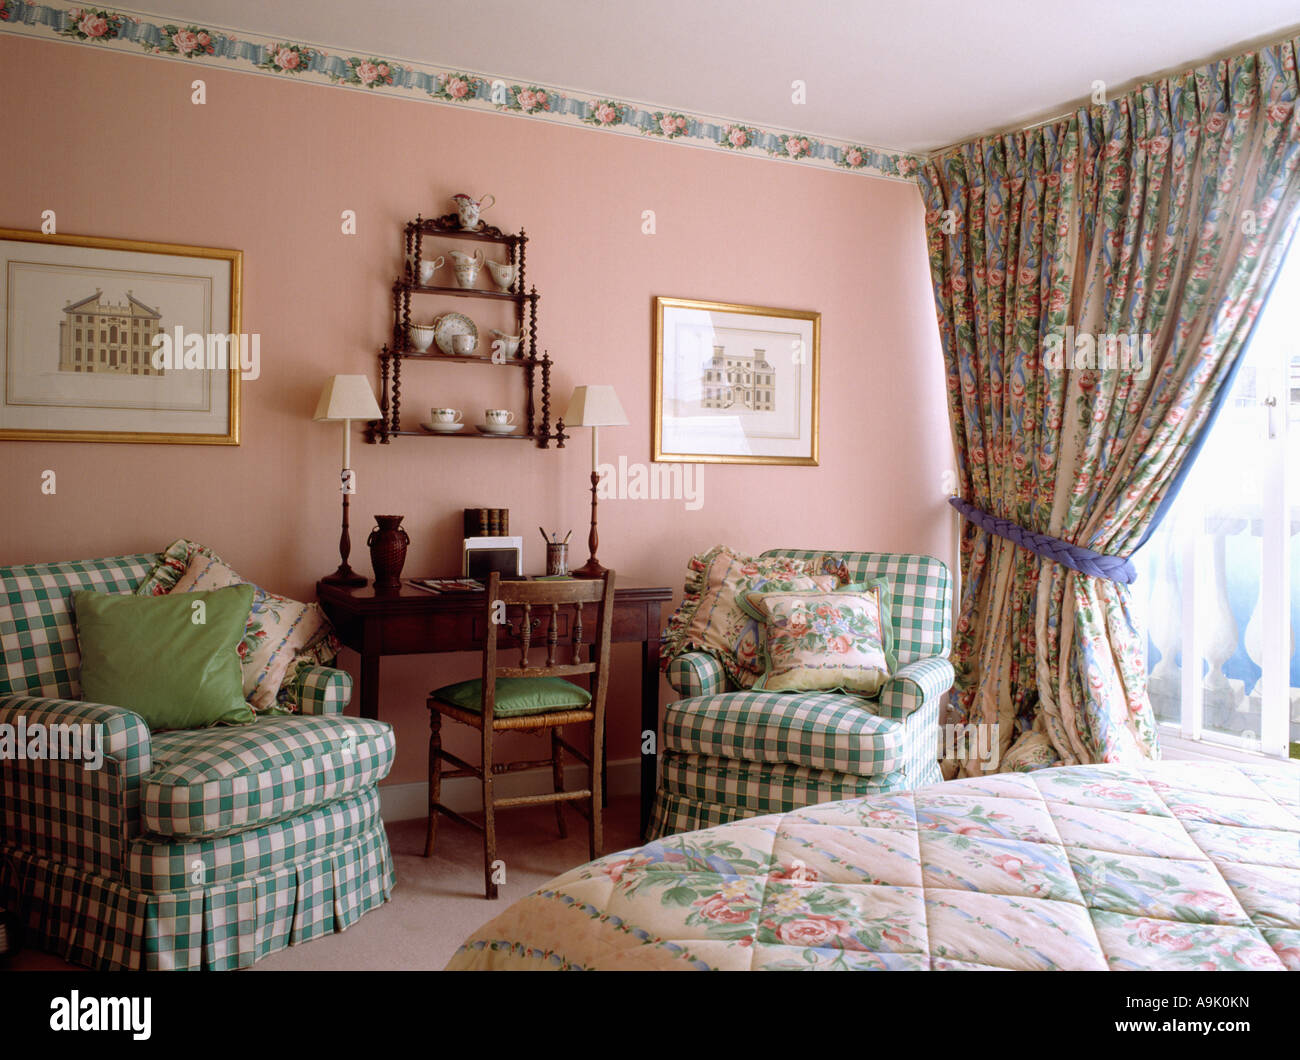 Green and white check armchairs in pink bedroom with pink ...